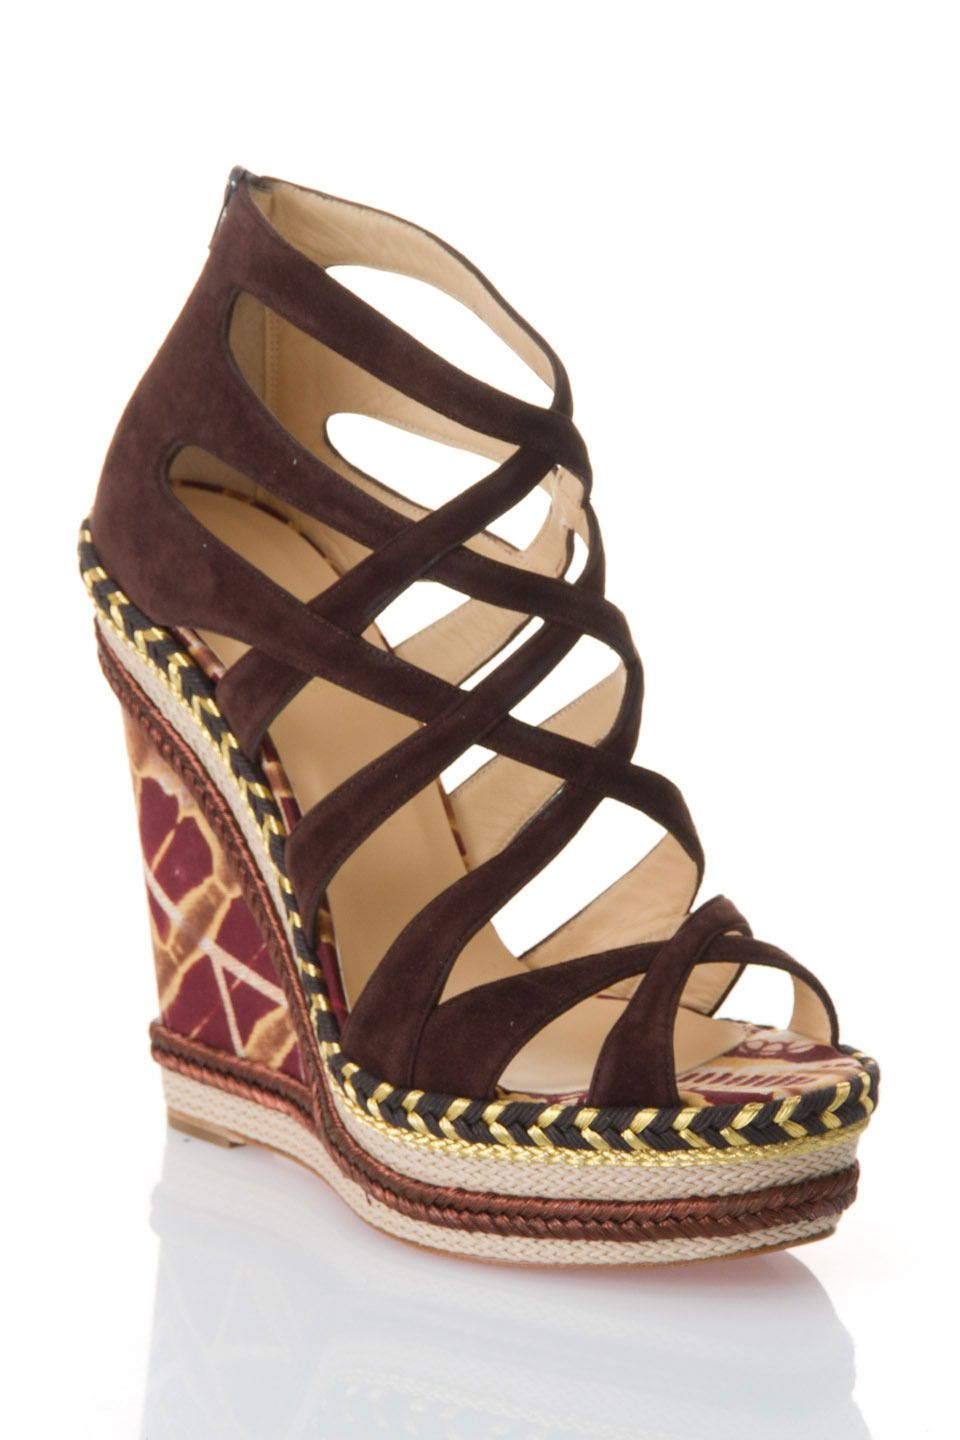 Louboutin Tosca 140 Suede Bazin Wedge Sandals in Chocolate